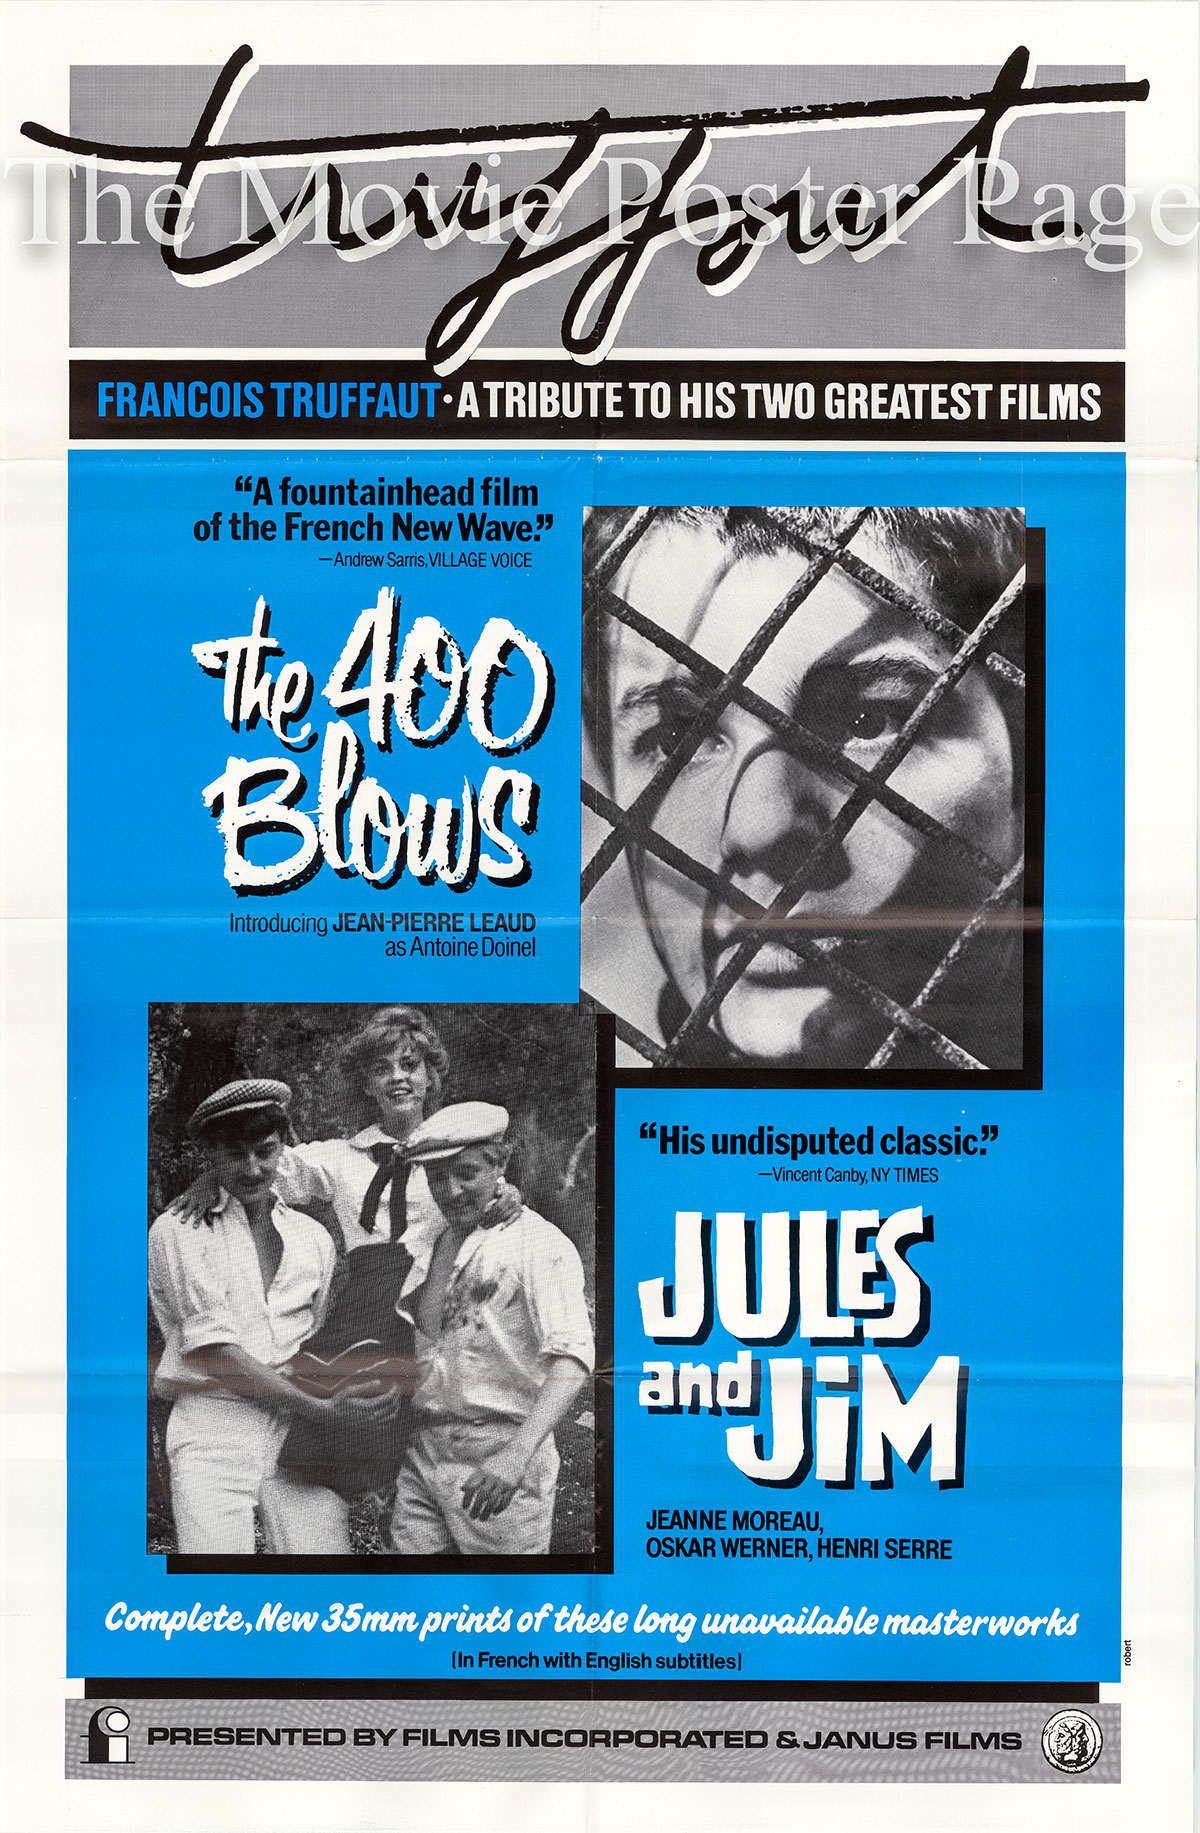 Pictured is a US one-sheet poster for a 1980s release of a Francois Truffaut Film Festival poster for the 400 Blows and Jules and Jim.